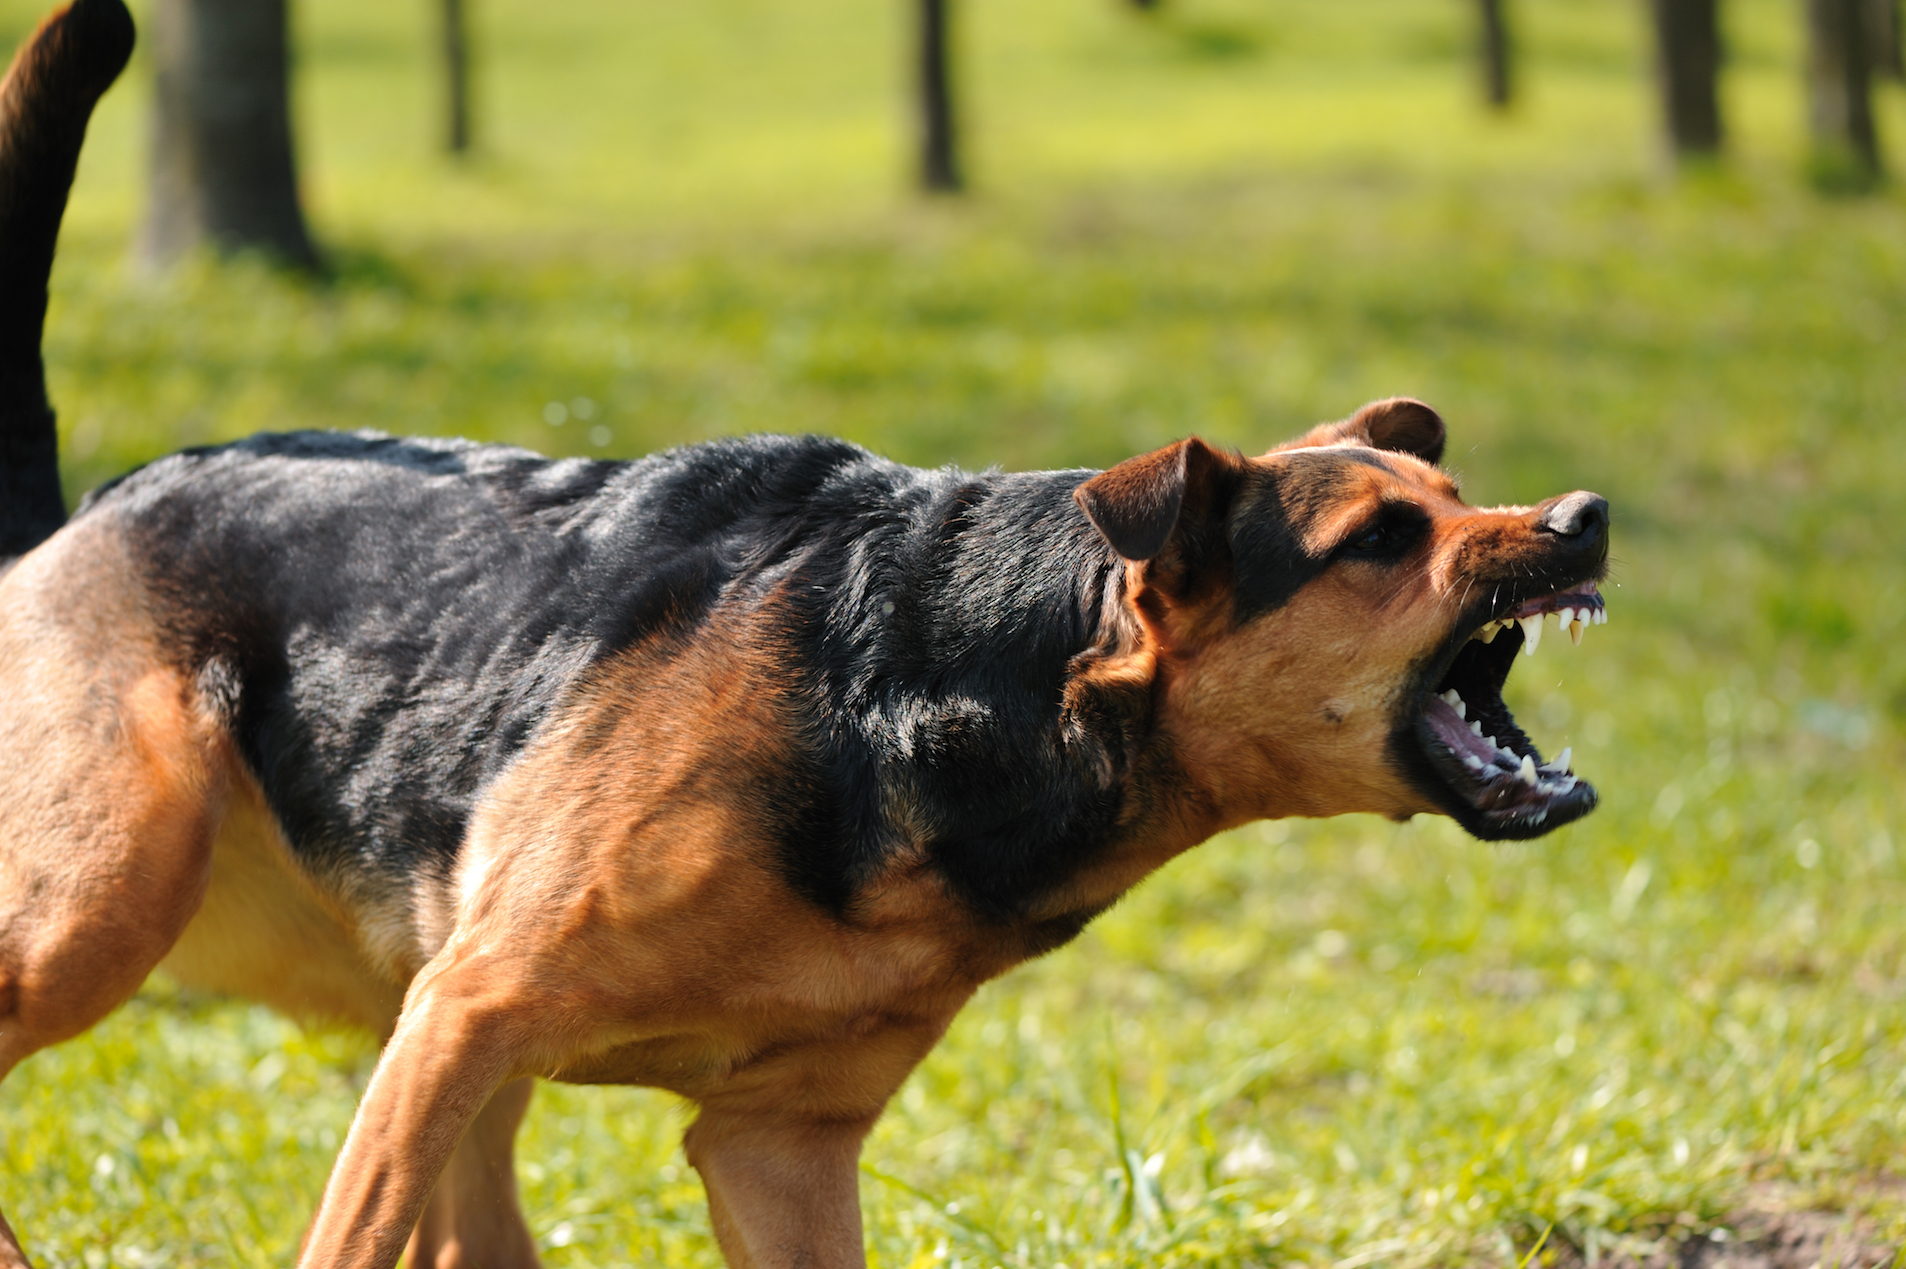 Growling and teeth baring are not the only ways dogs convey aggression. A new report reveals how humans can better understand their dog.